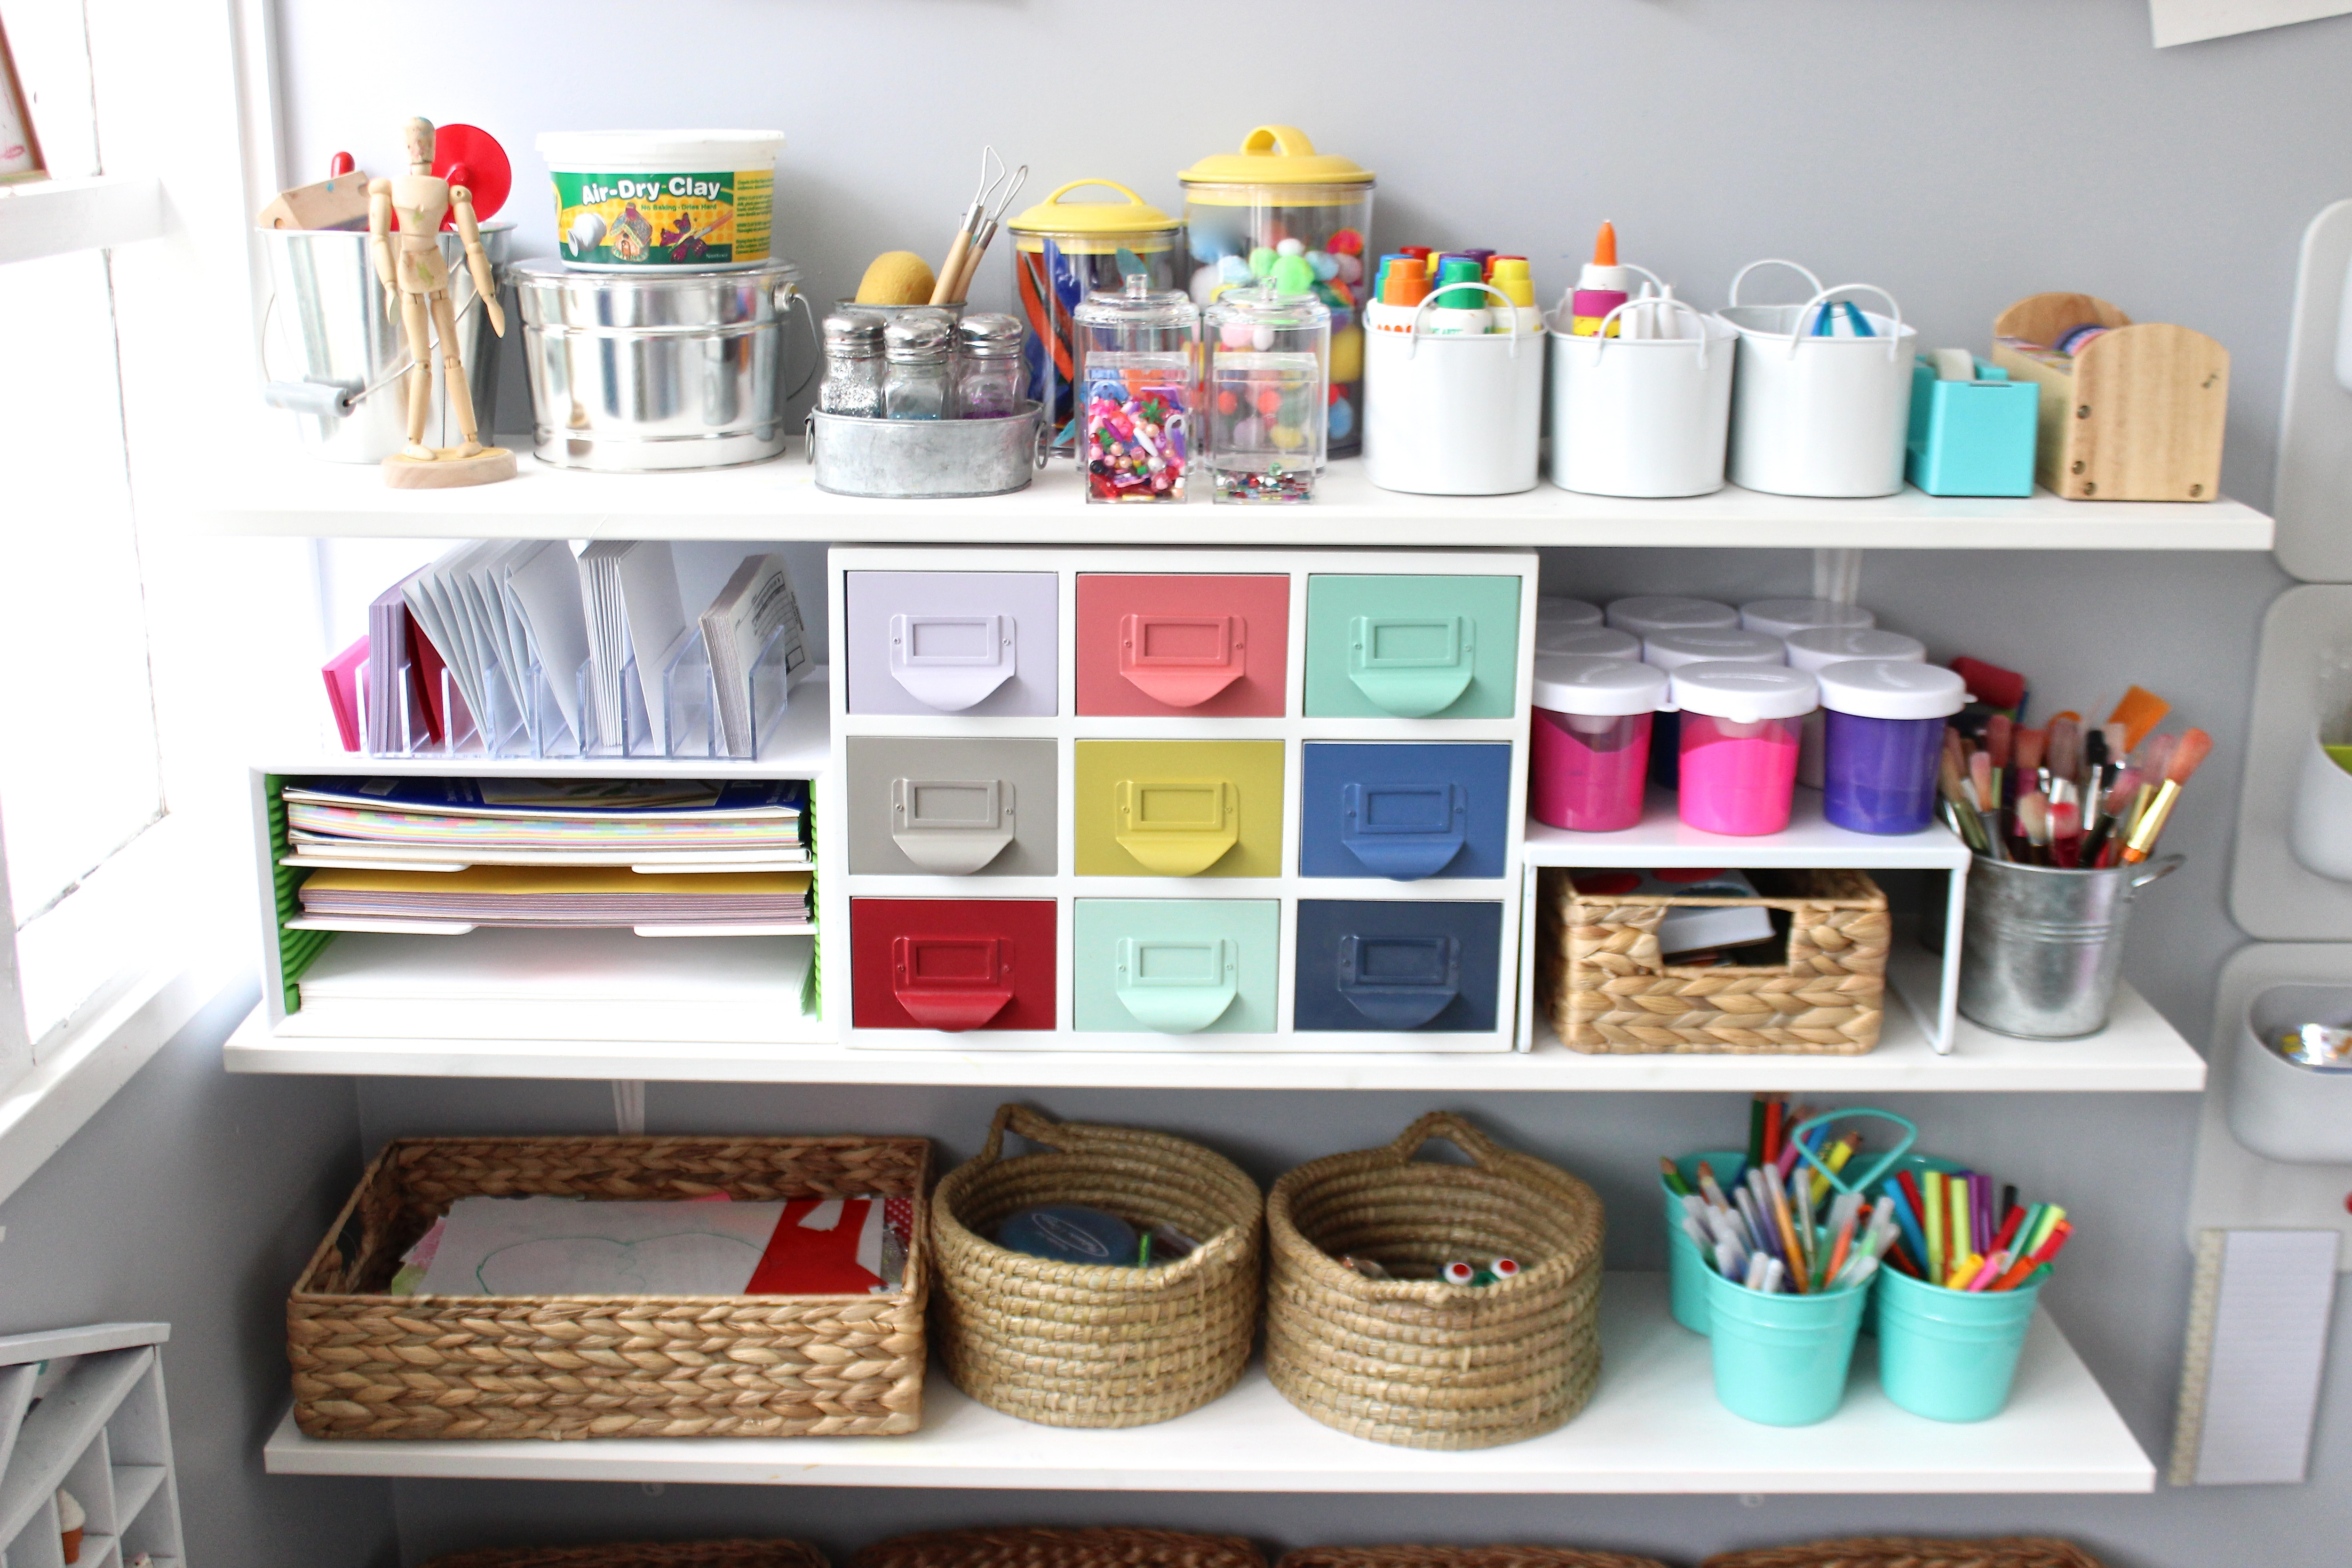 10 Tips on How to Create a Fun. Yet Stylish. Art Space for Kids - Decorating - Lonny